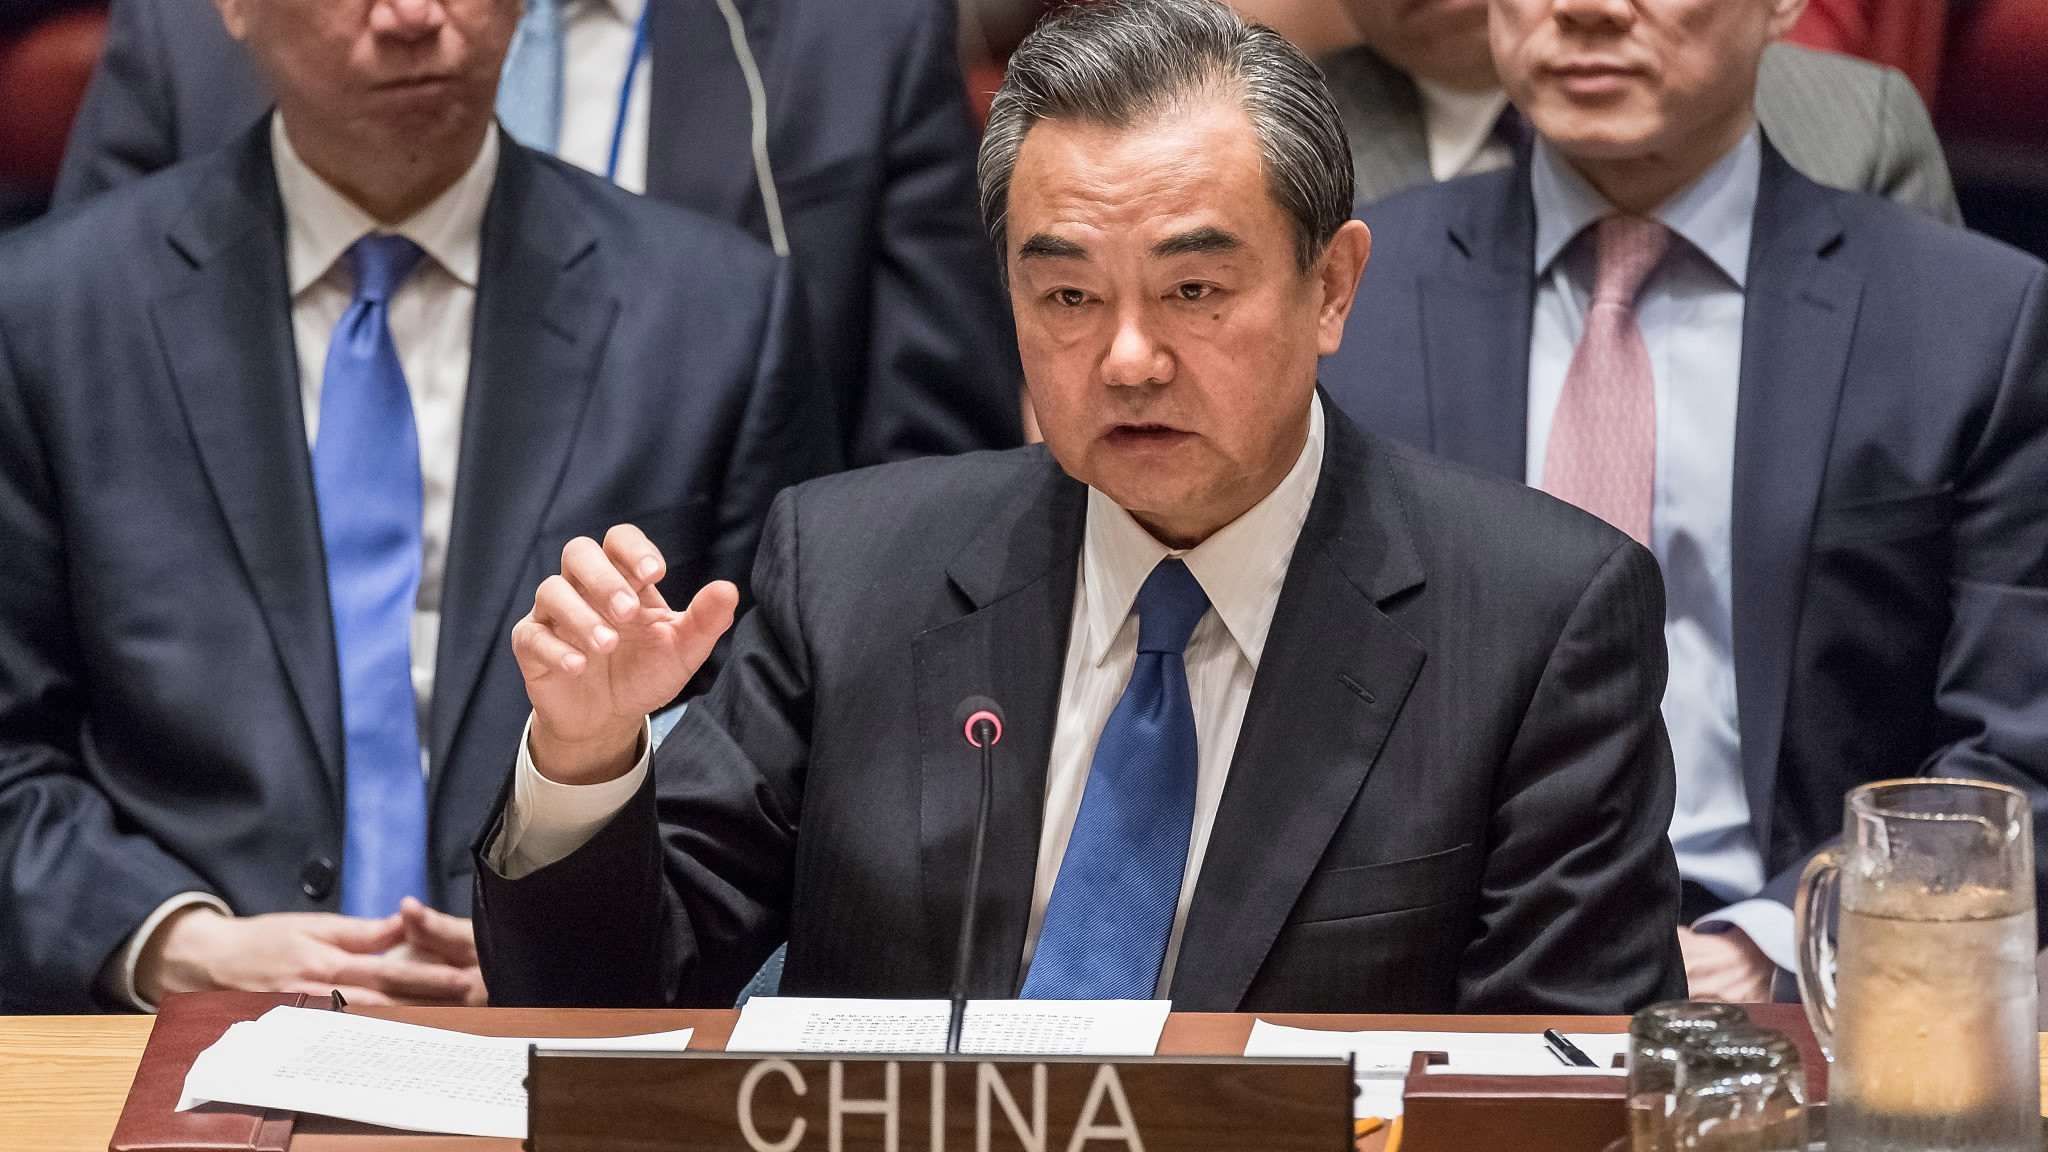 Peninsular peace without Beijing rests on a house of cards